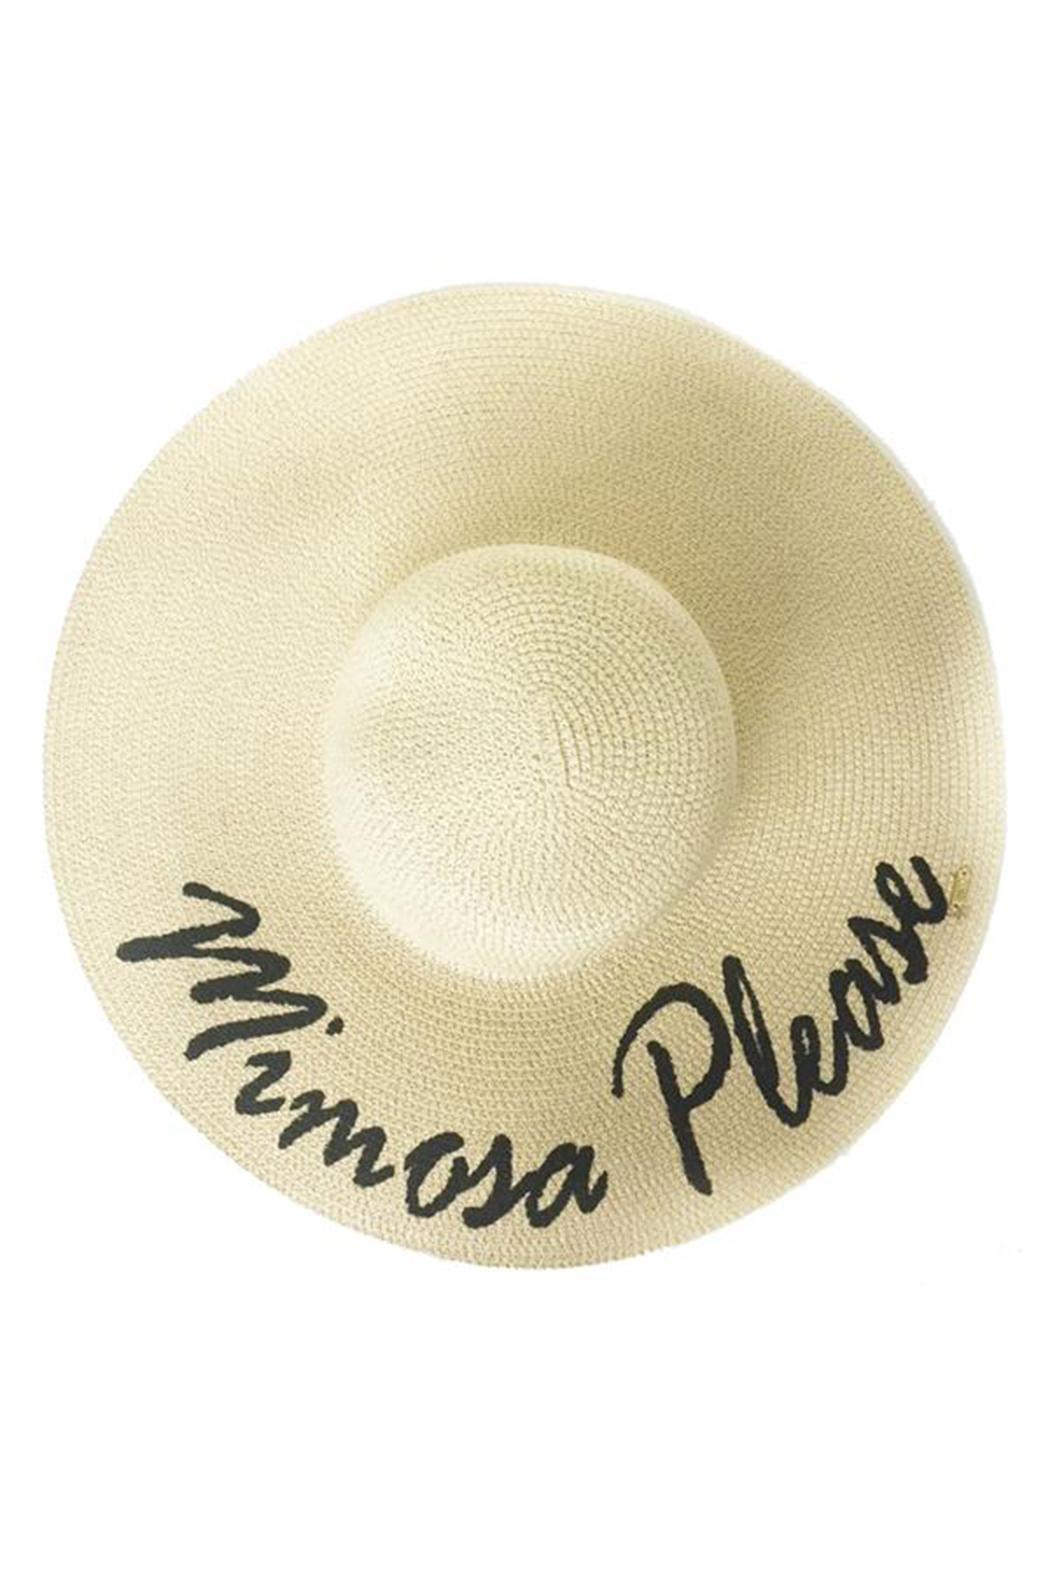 Abaco Beach Company Mimosas Beach Hat - Front Cropped Image